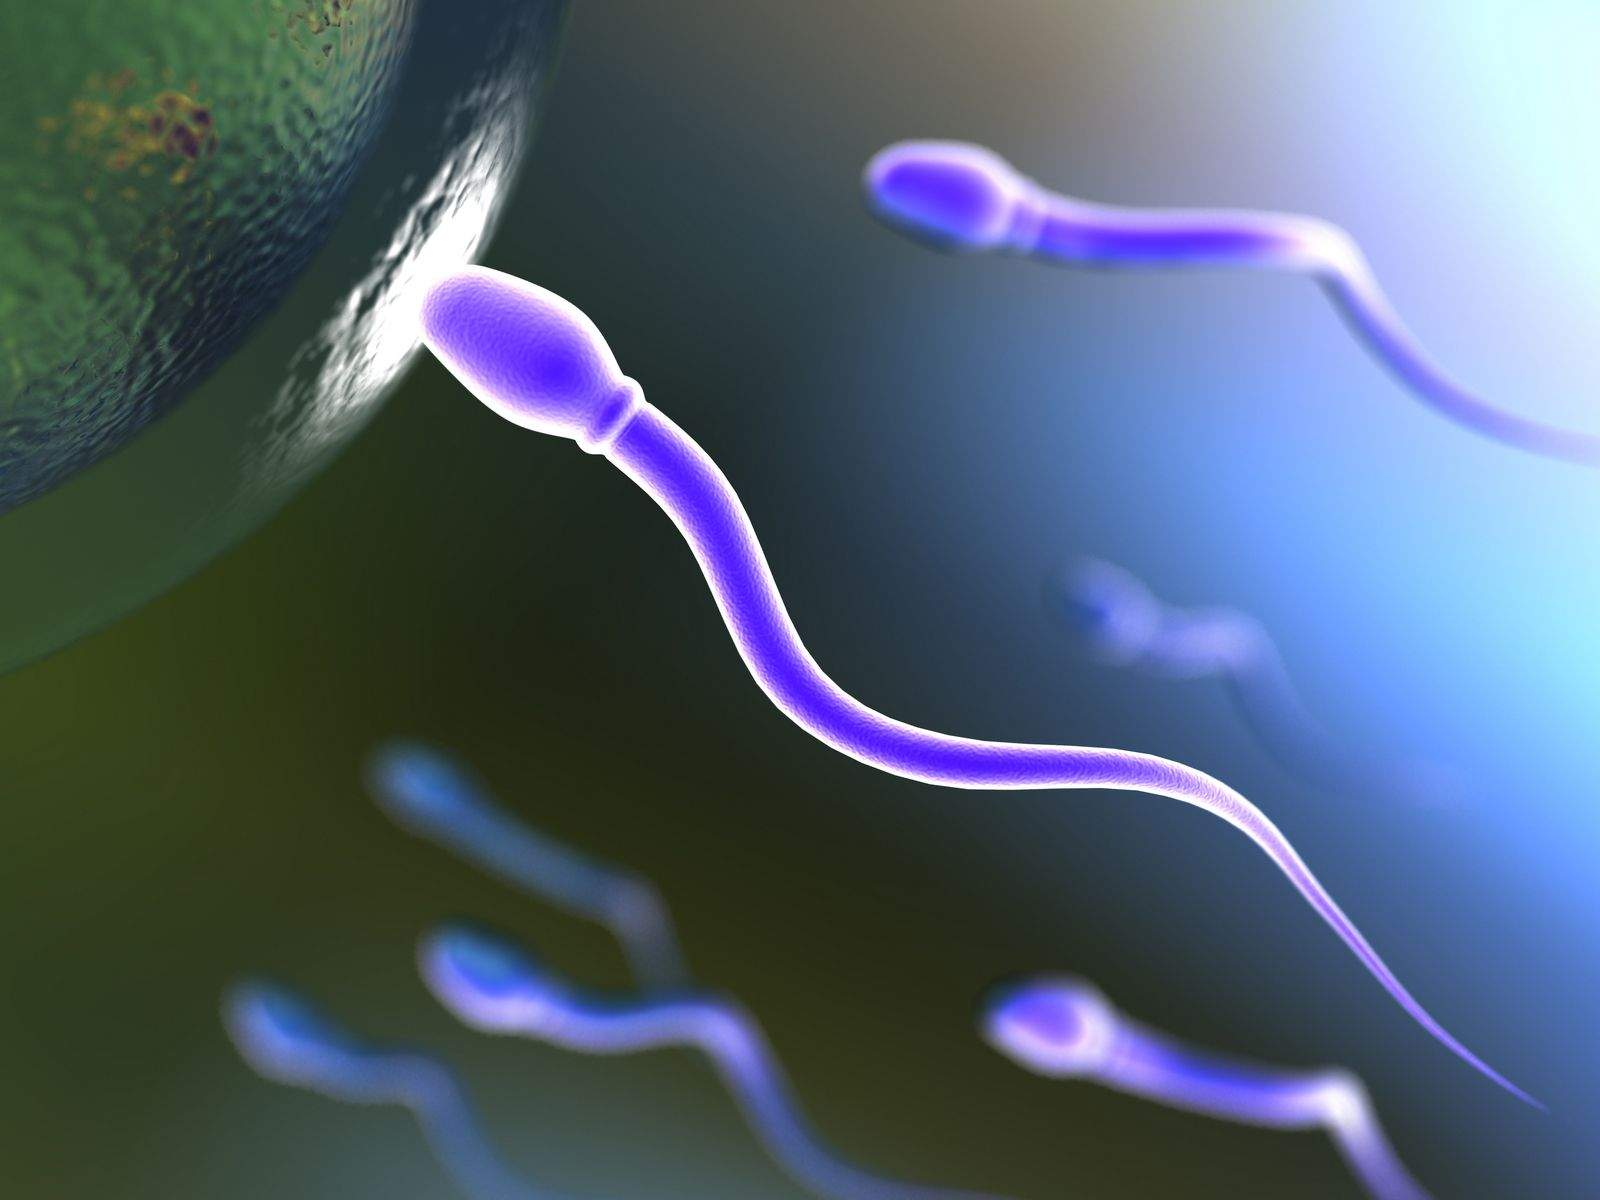 the sperm About